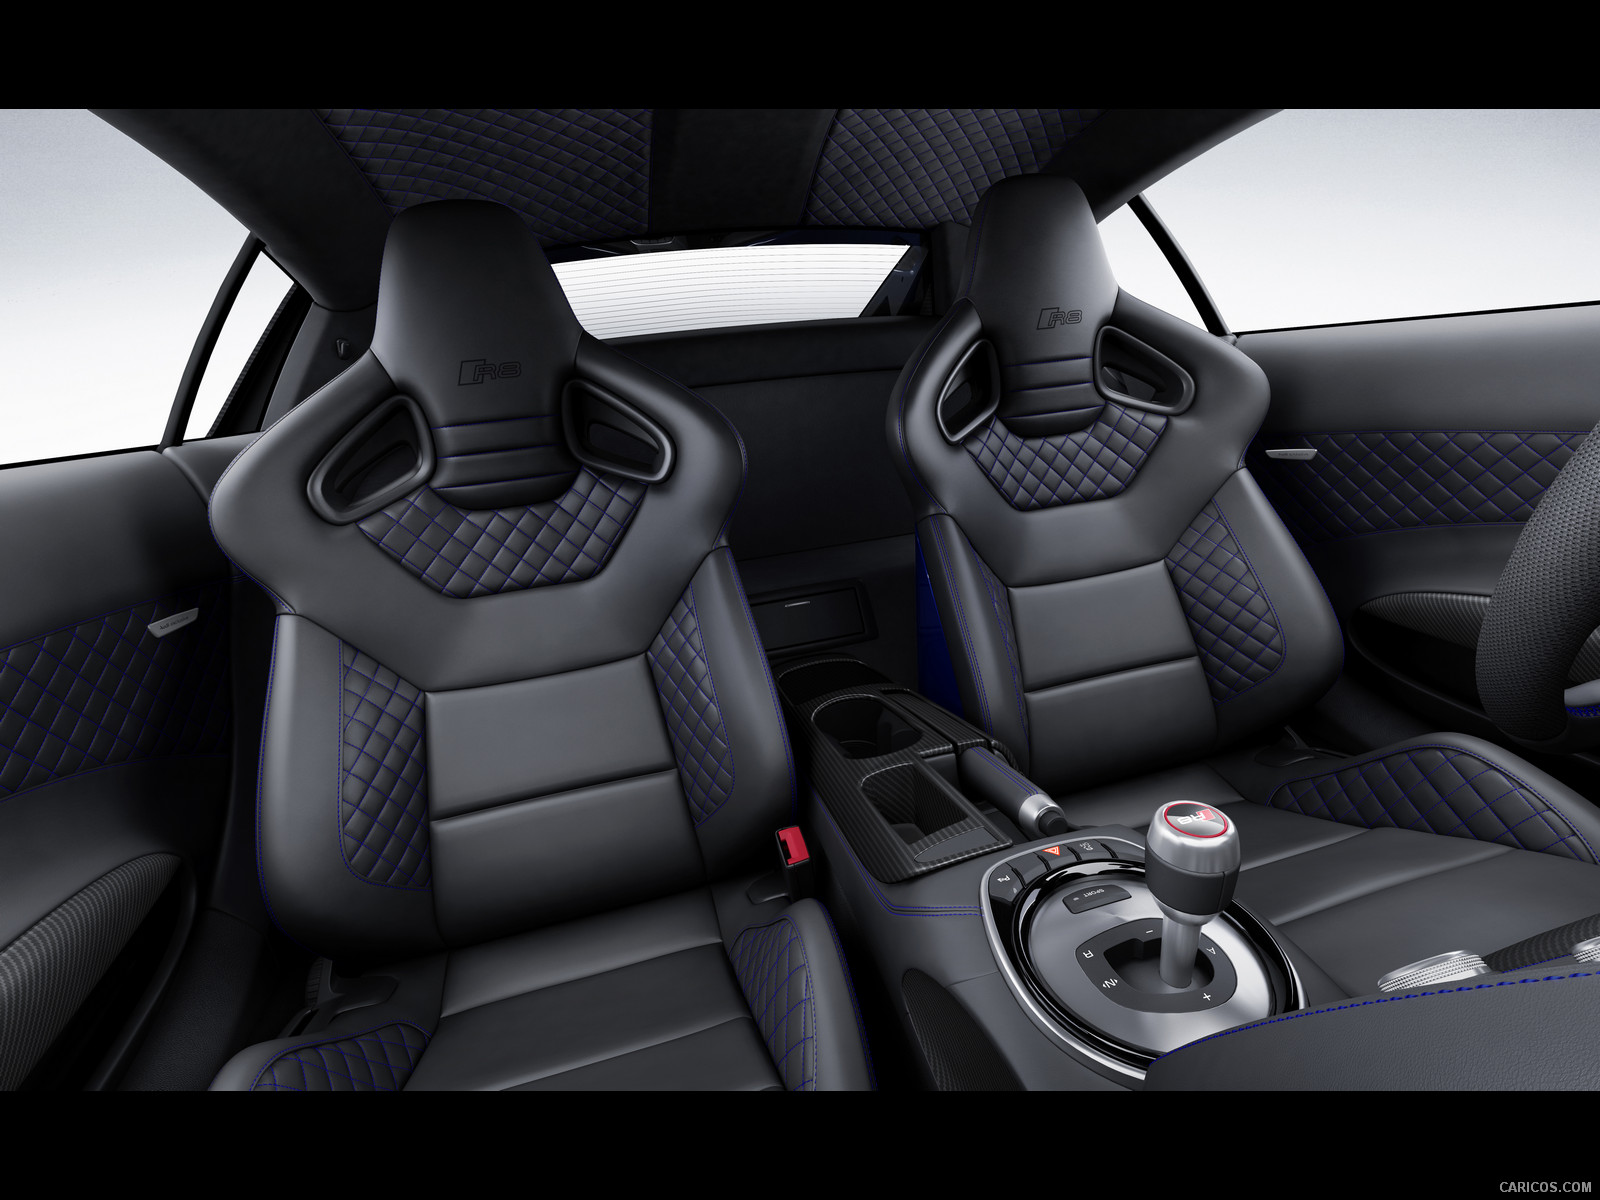 2015 Audi R8 LMX - Interior Wallpaper